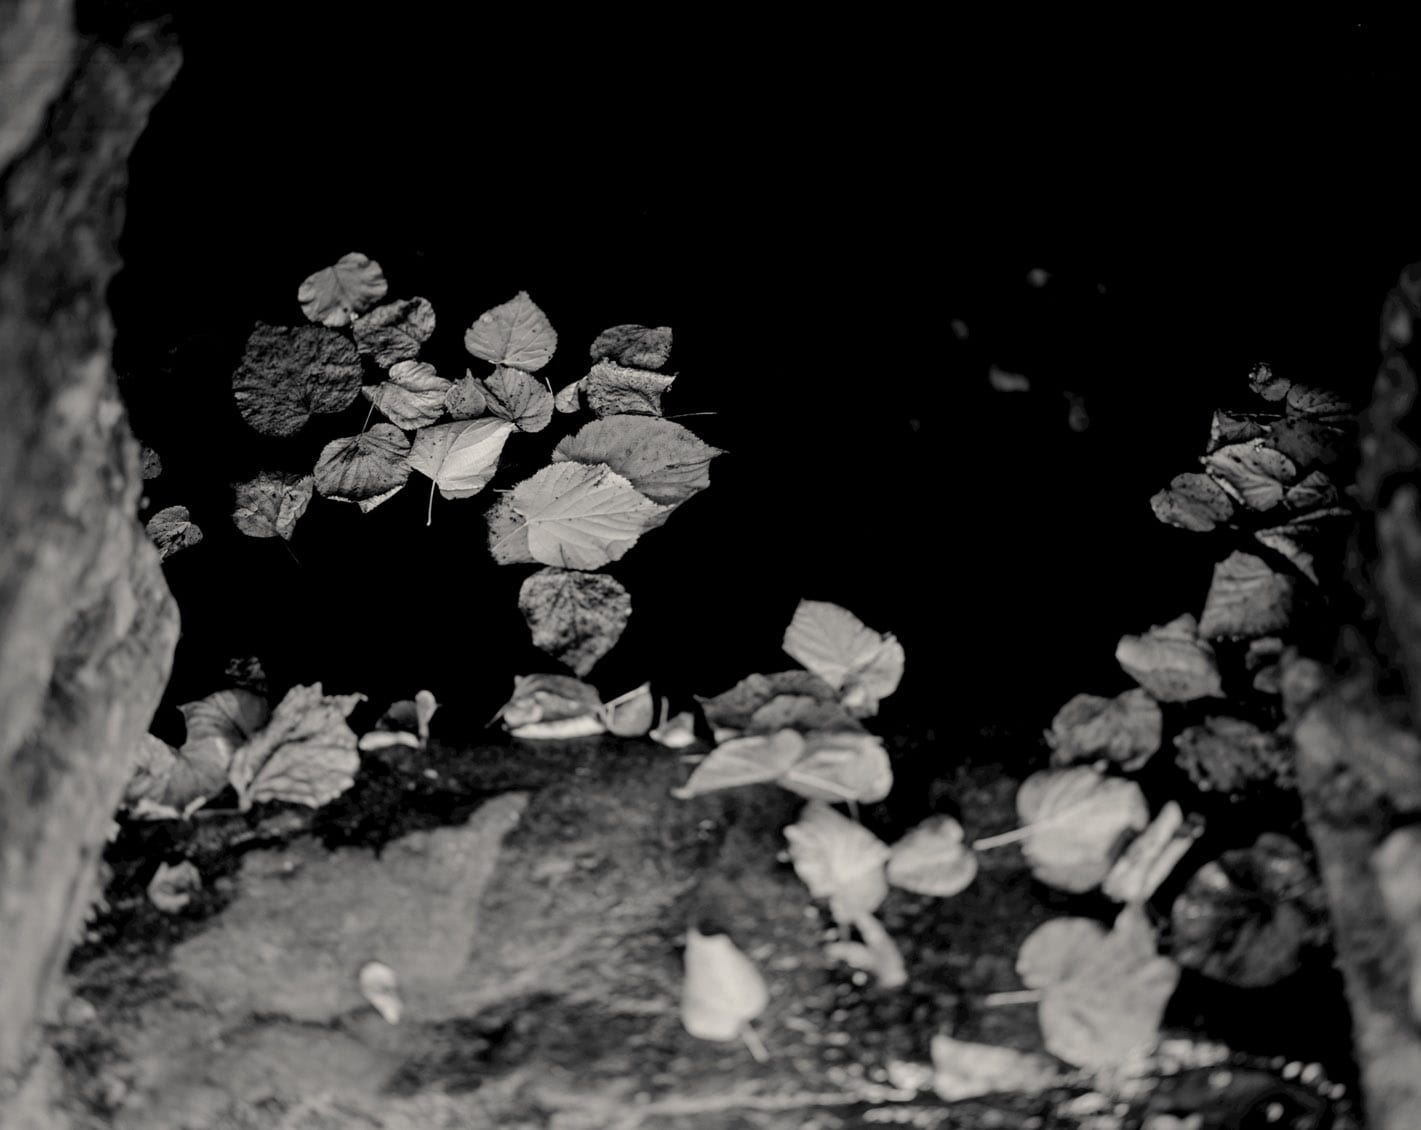 Untitled 42-Ex Voto-Alys Tomlinson-black and white photography - leaves in water